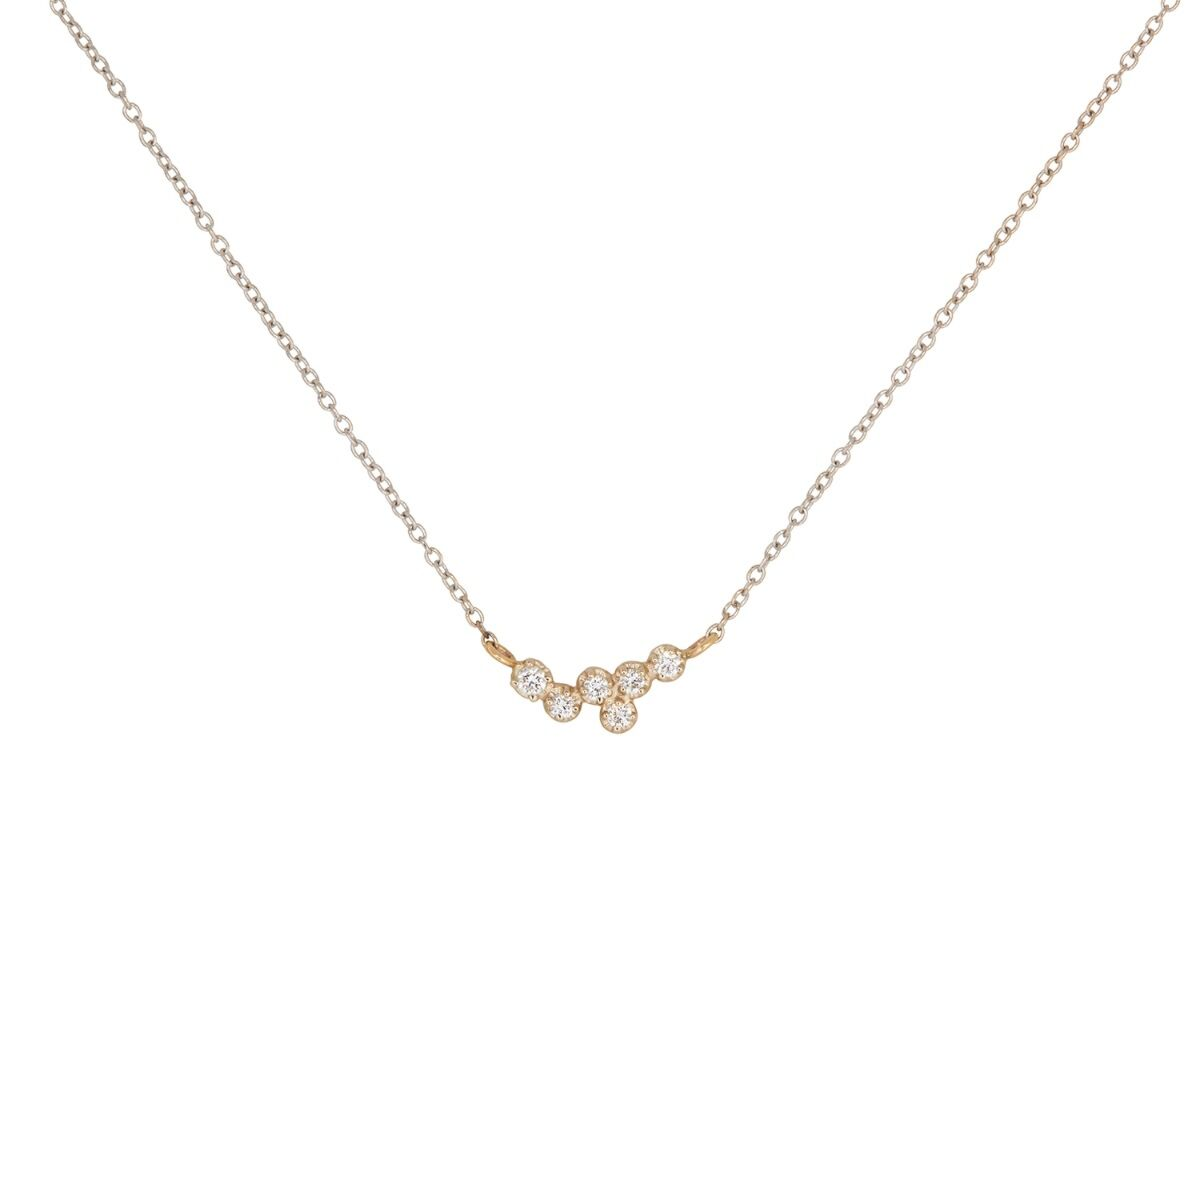 Hydra White Diamond Necklace image